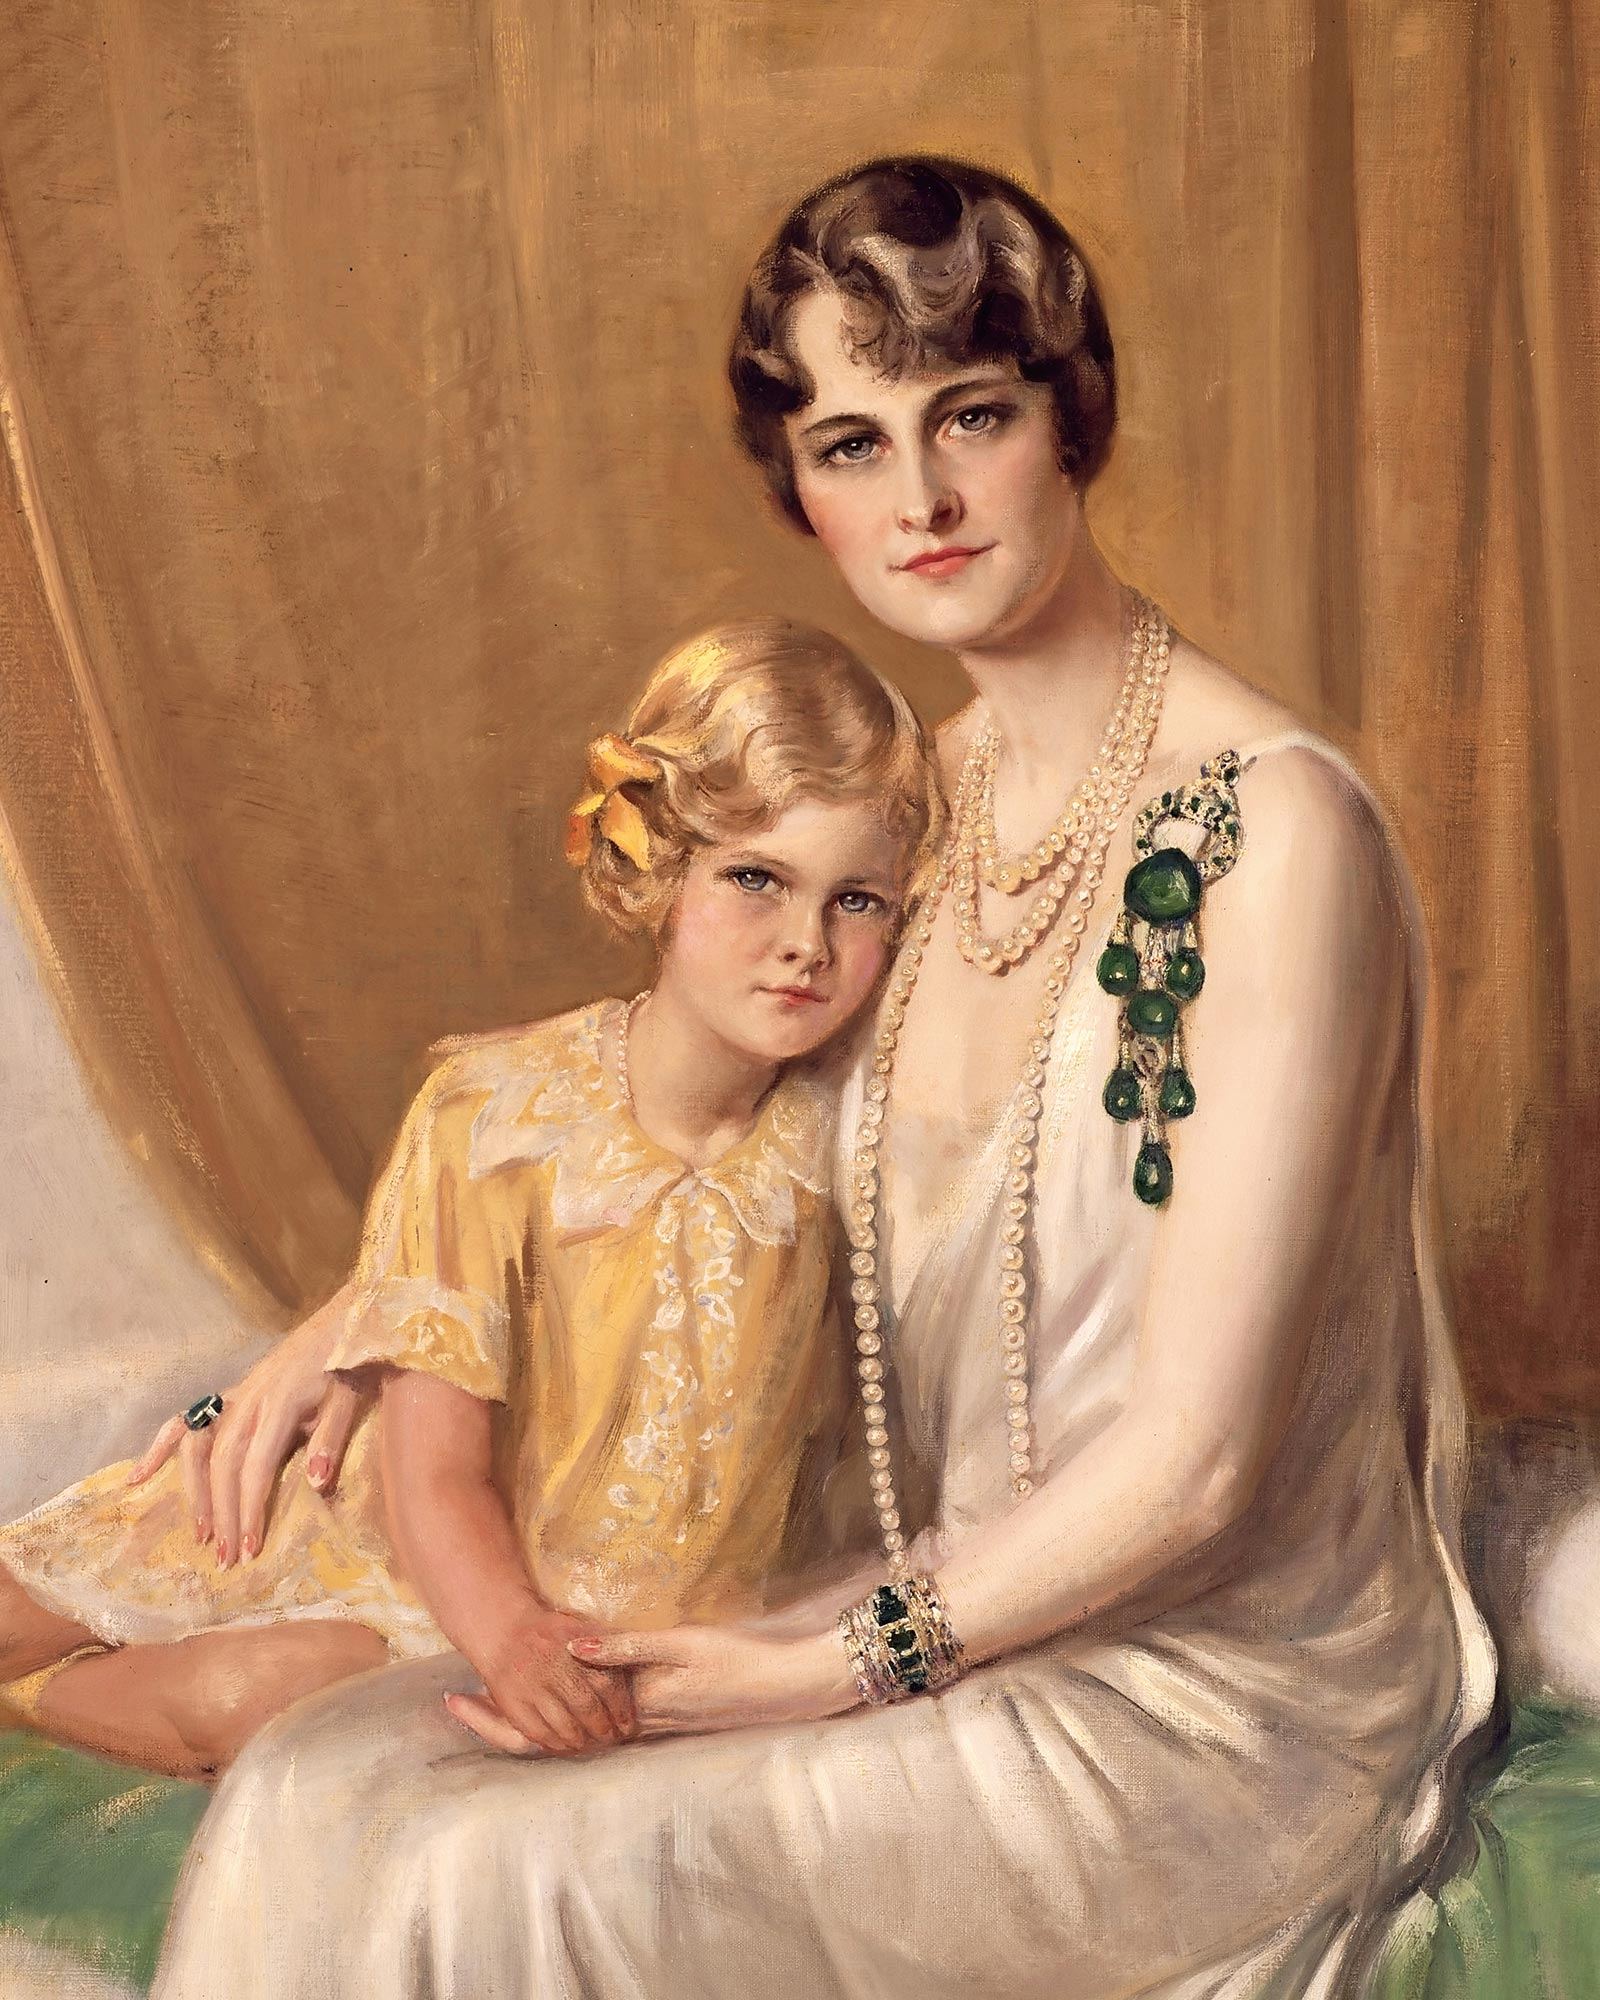 Jewelery - On this portrait of 1929 by Giulio de Blaas, Marjorie Merriweather Post - with her daughter Nedenia - wears the brooch made up of seven engraved emeralds, the main one of which dates back to the mo- mond period and dates back to the 17th century. Courtesy: Hillwood Estate, Museum and Garden.